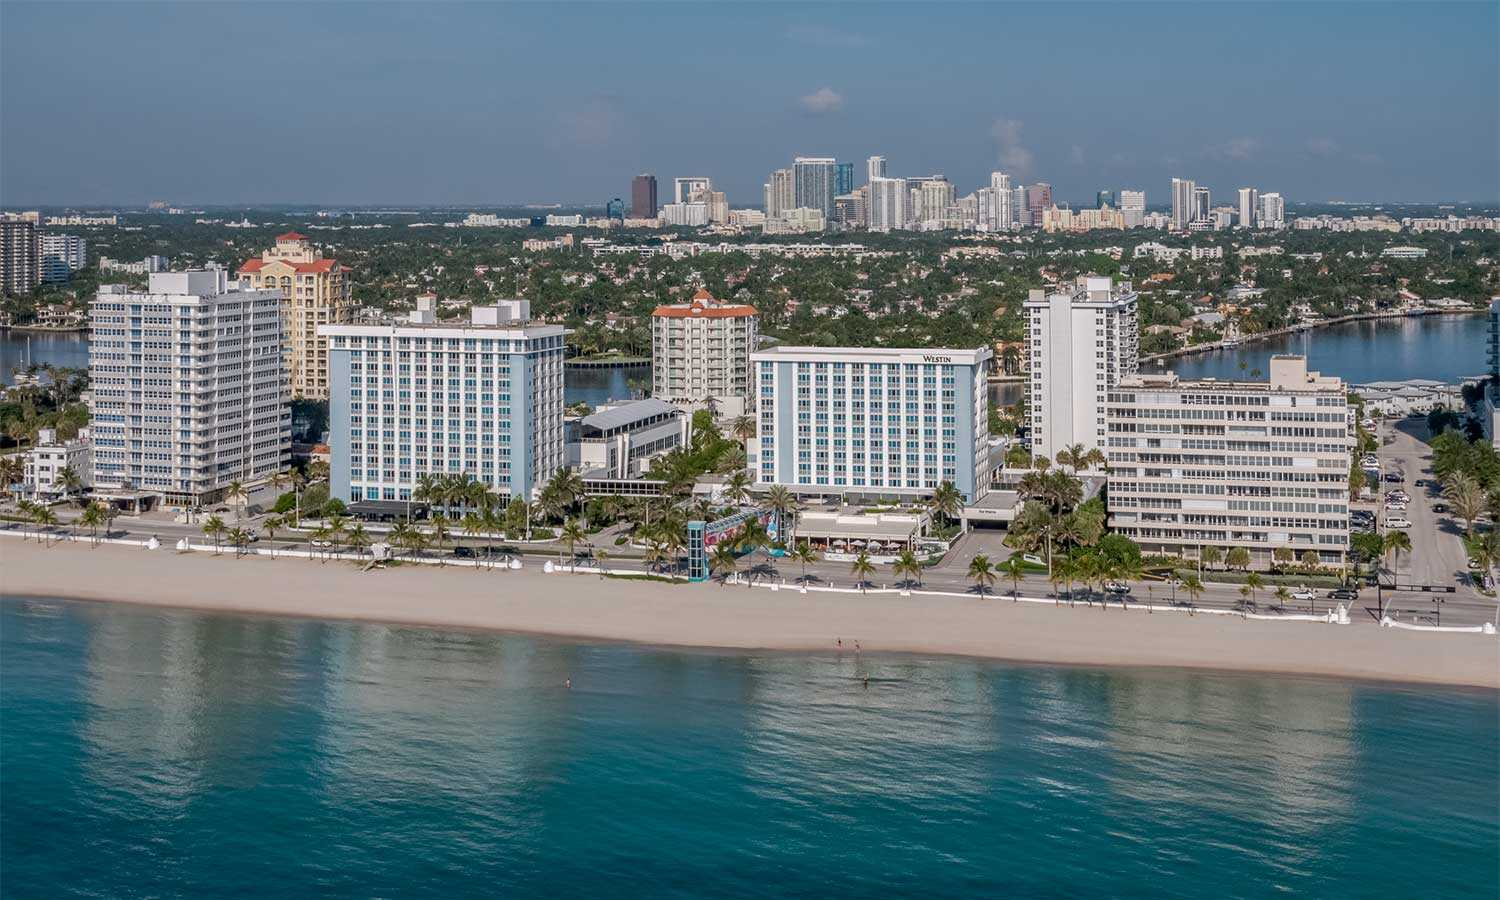 aerial shot of the westin fort lauderdale resort exterior